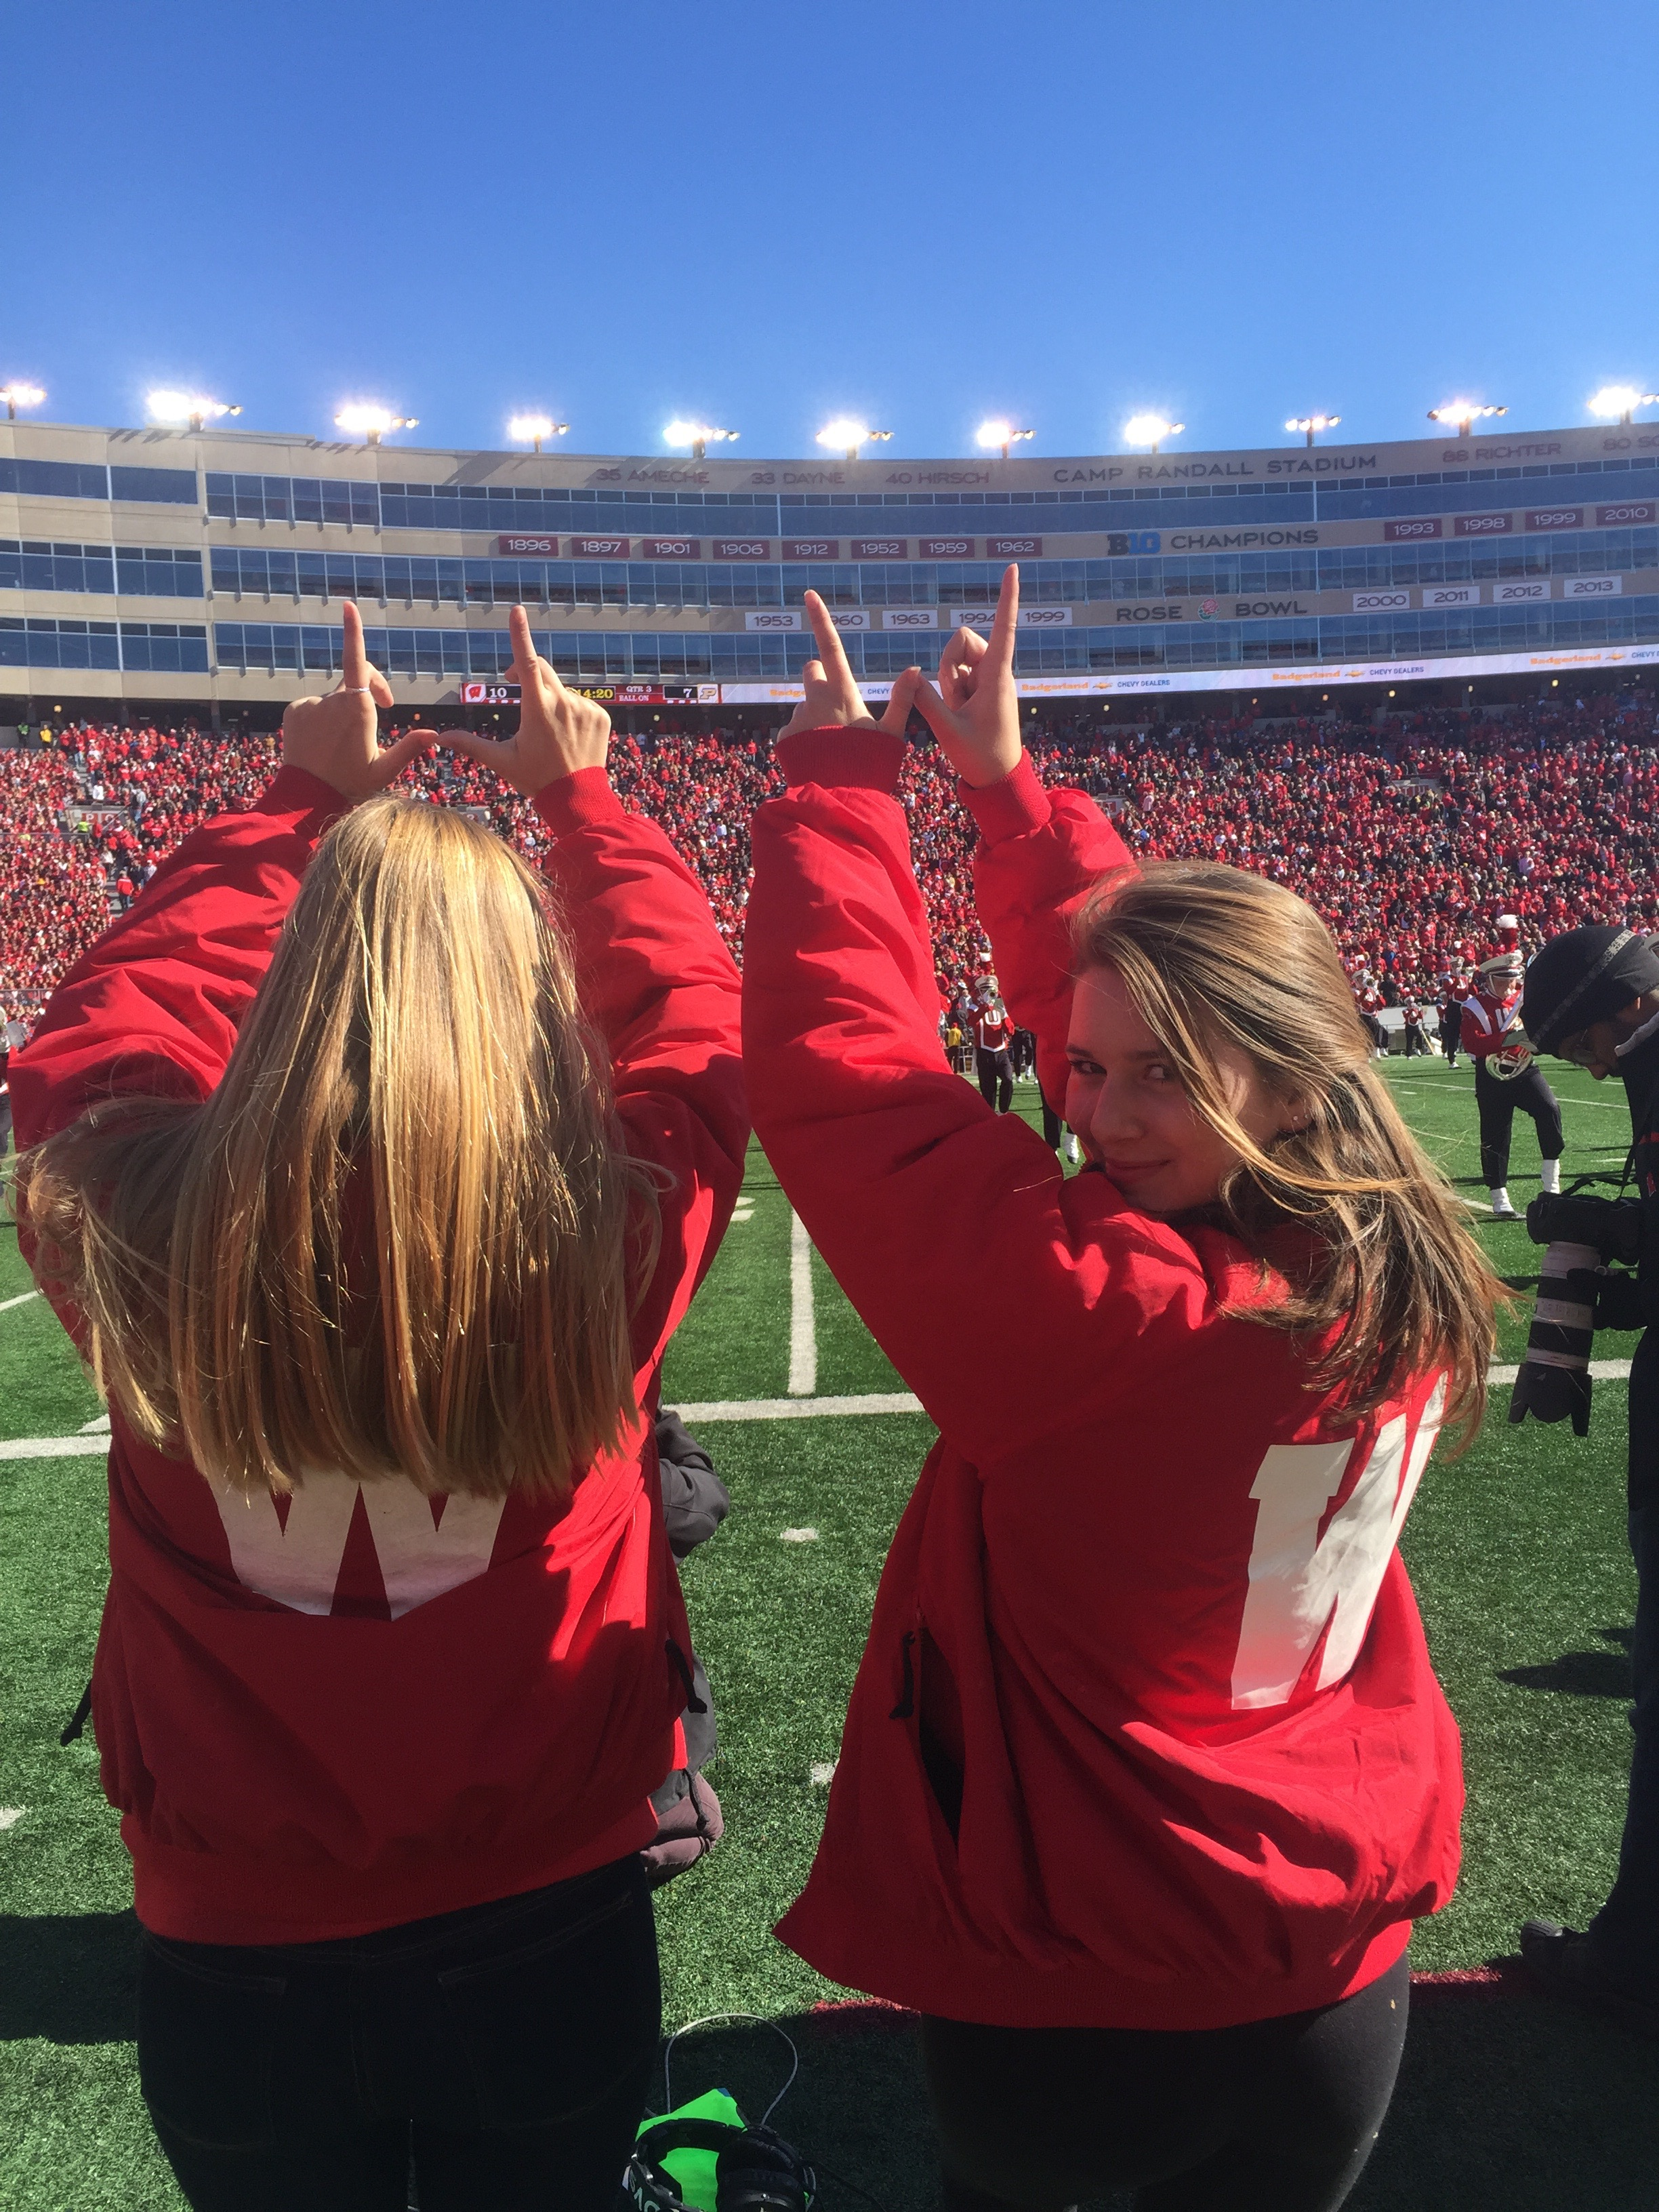 Natalie reps Homecoming in her 'dubs' on the Camp Randall field during halftime.